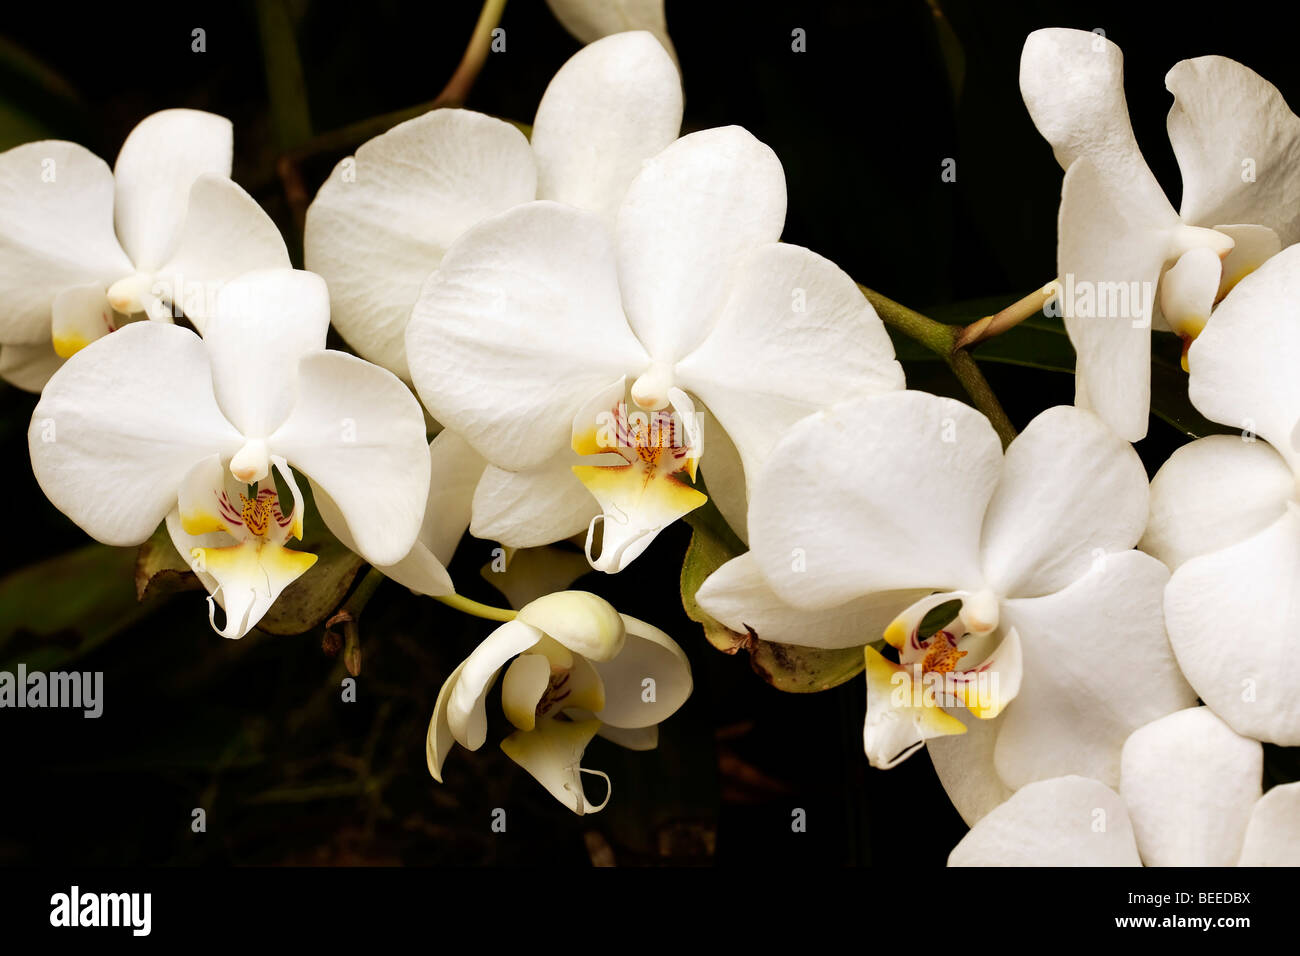 White moon flower orchid. Order Asparagales, family Orchidaceae, genus Phalaenopsis, species Aphrodite. South Africa. - Stock Image